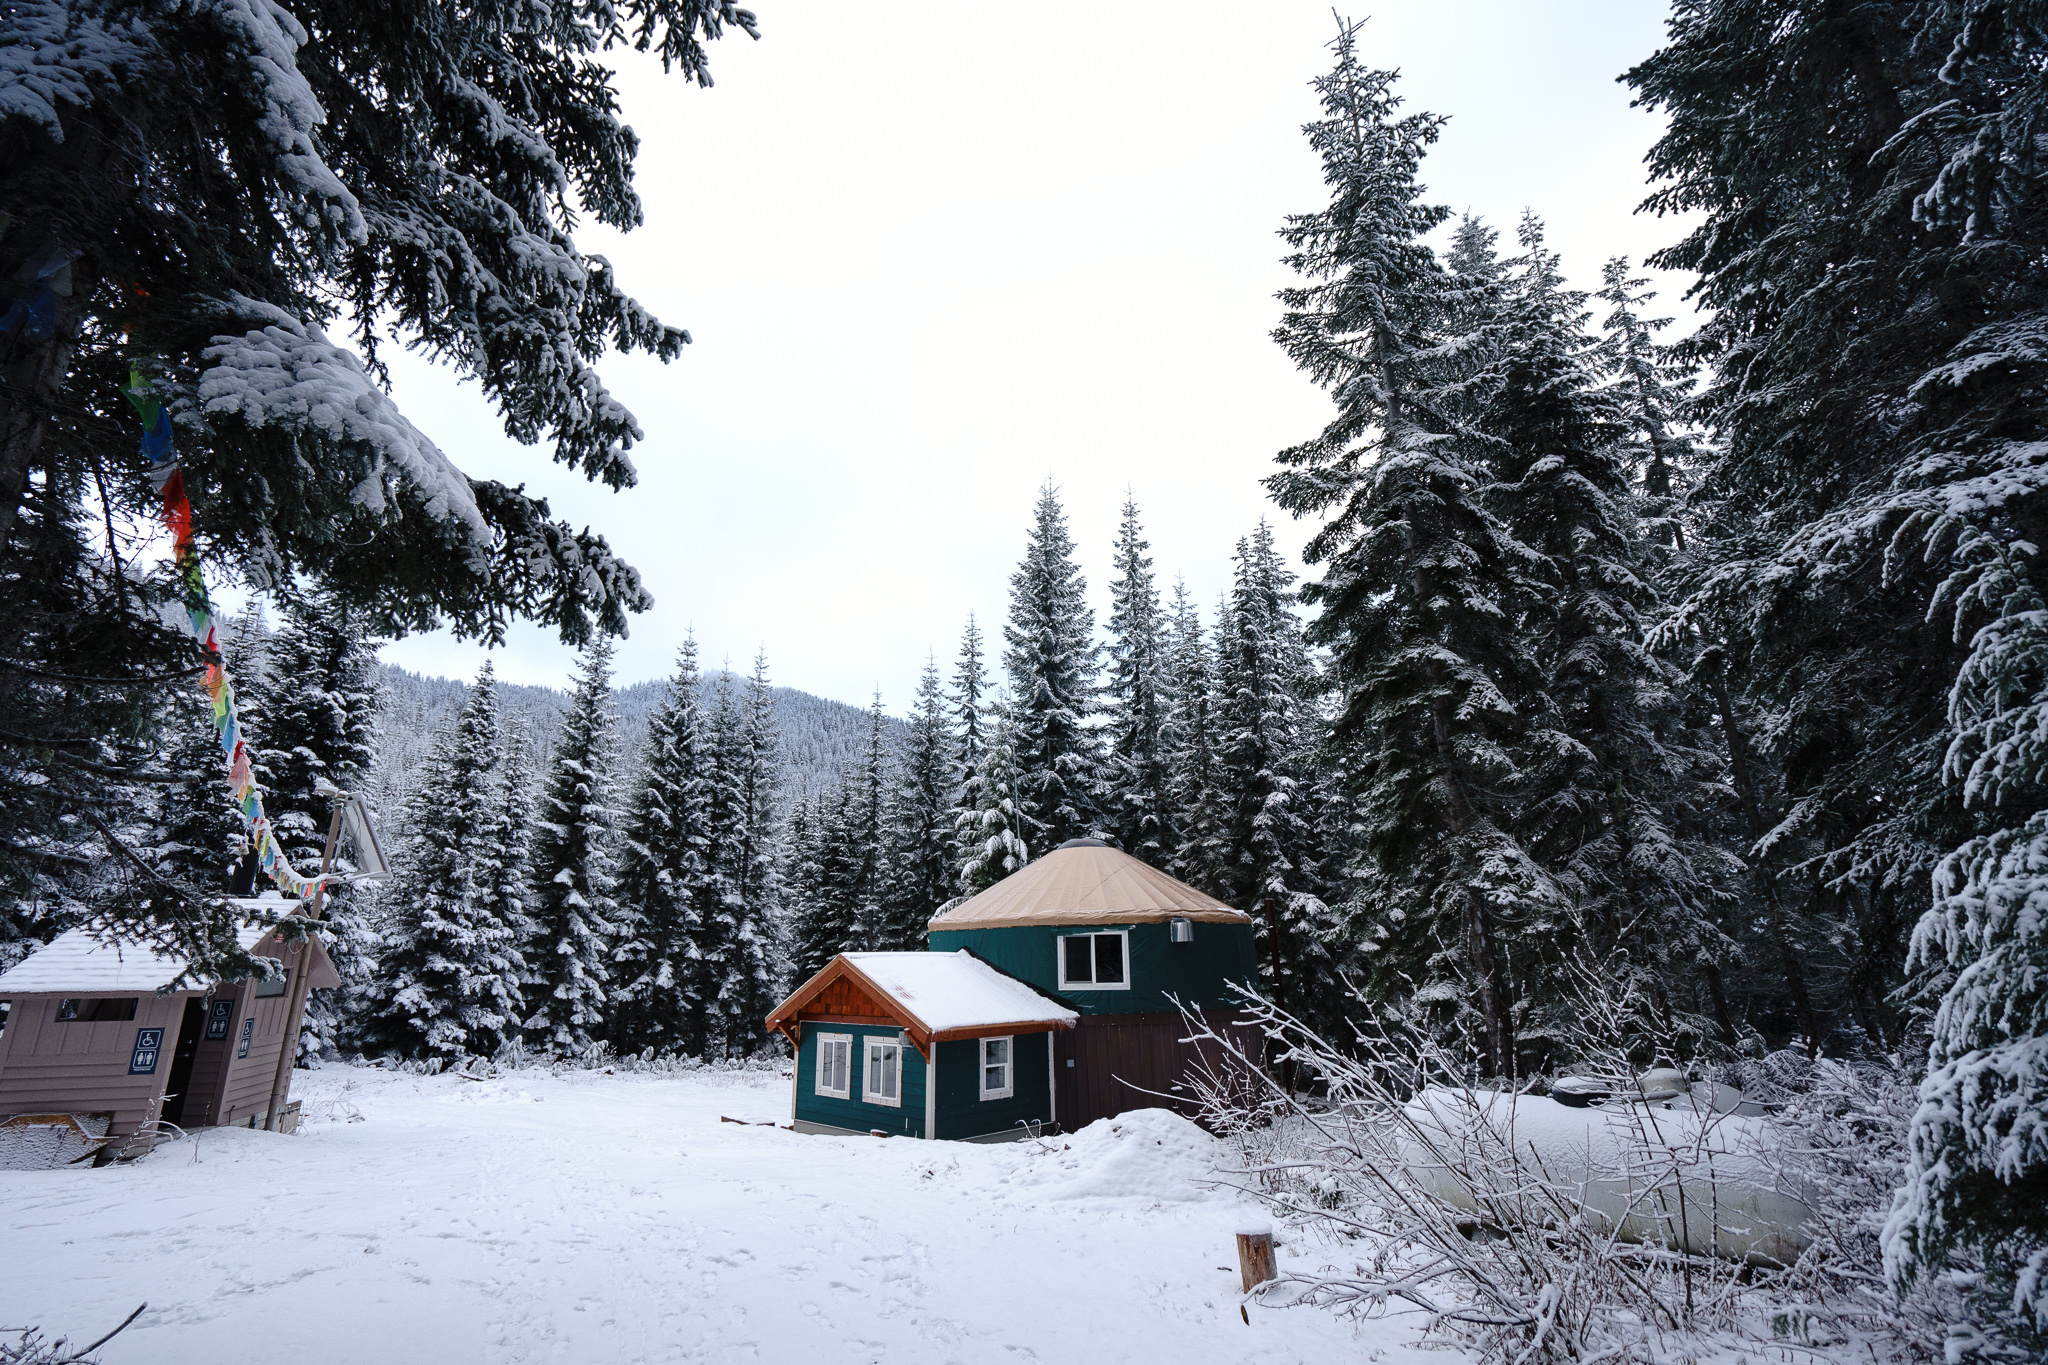 A yurt deep in the woods